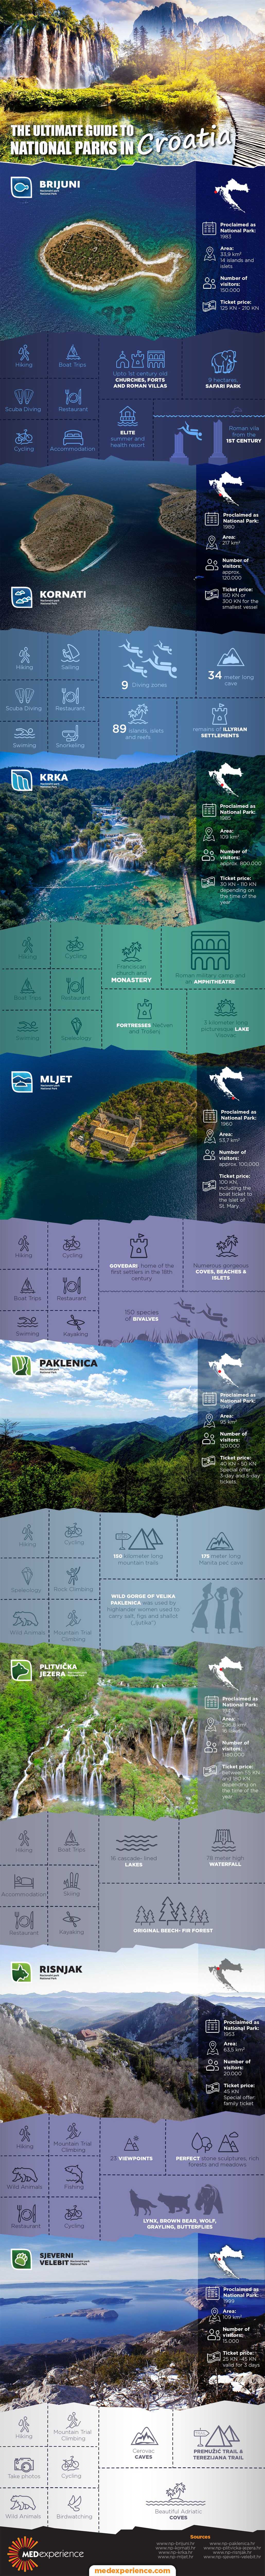 The Ultimate Guide To National Parks In Croatia